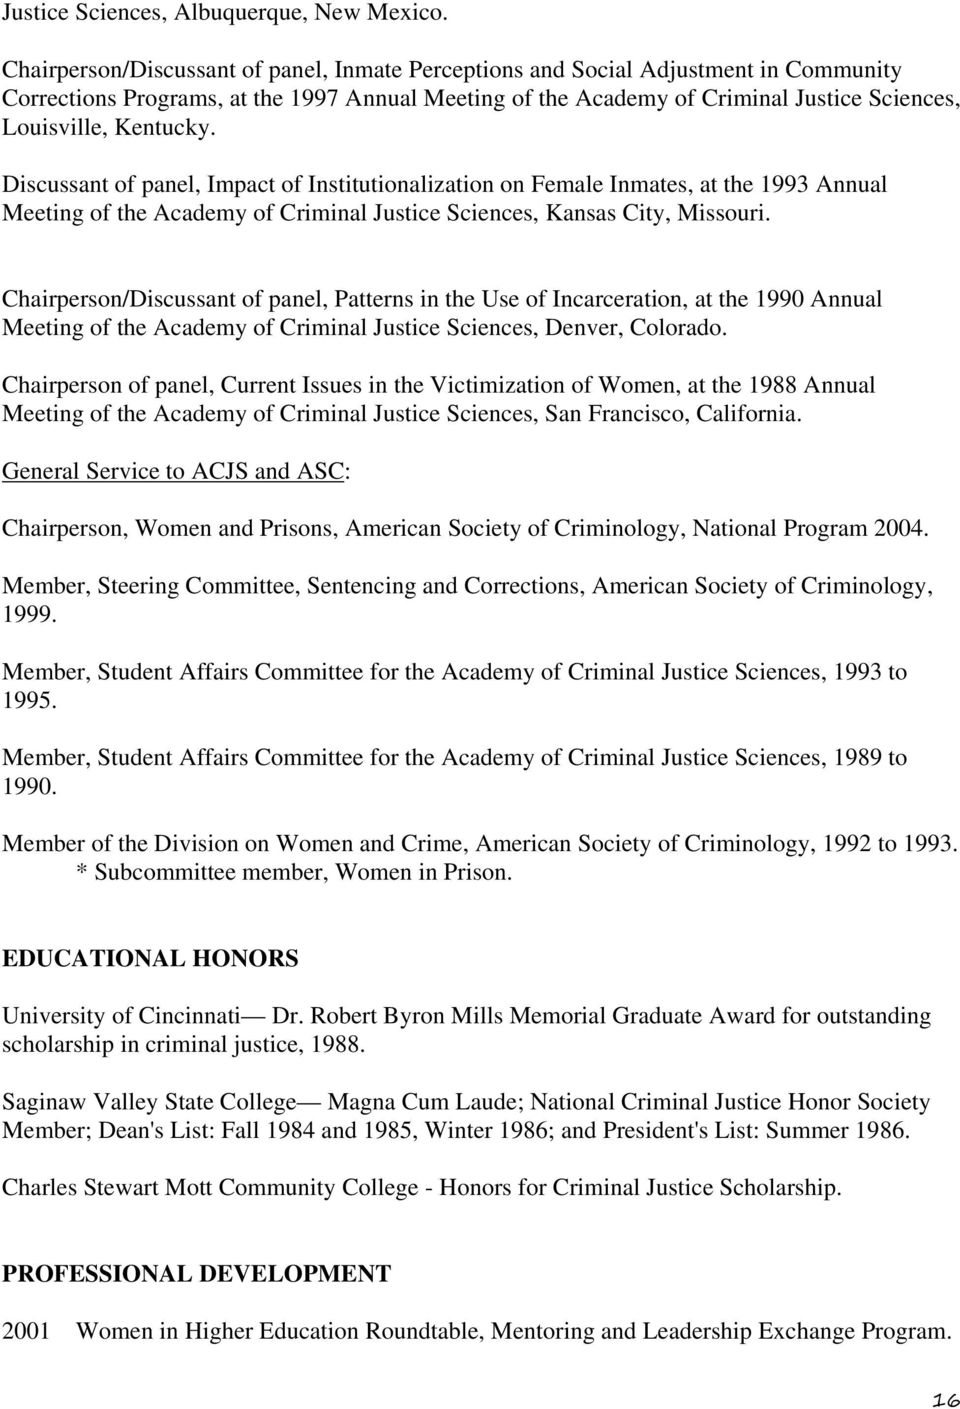 Kentucky. Discussant of panel, Impact of Institutionalization on Female Inmates, at the 1993 Annual Meeting of the Academy of Criminal Justice Sciences, Kansas City, Missouri.